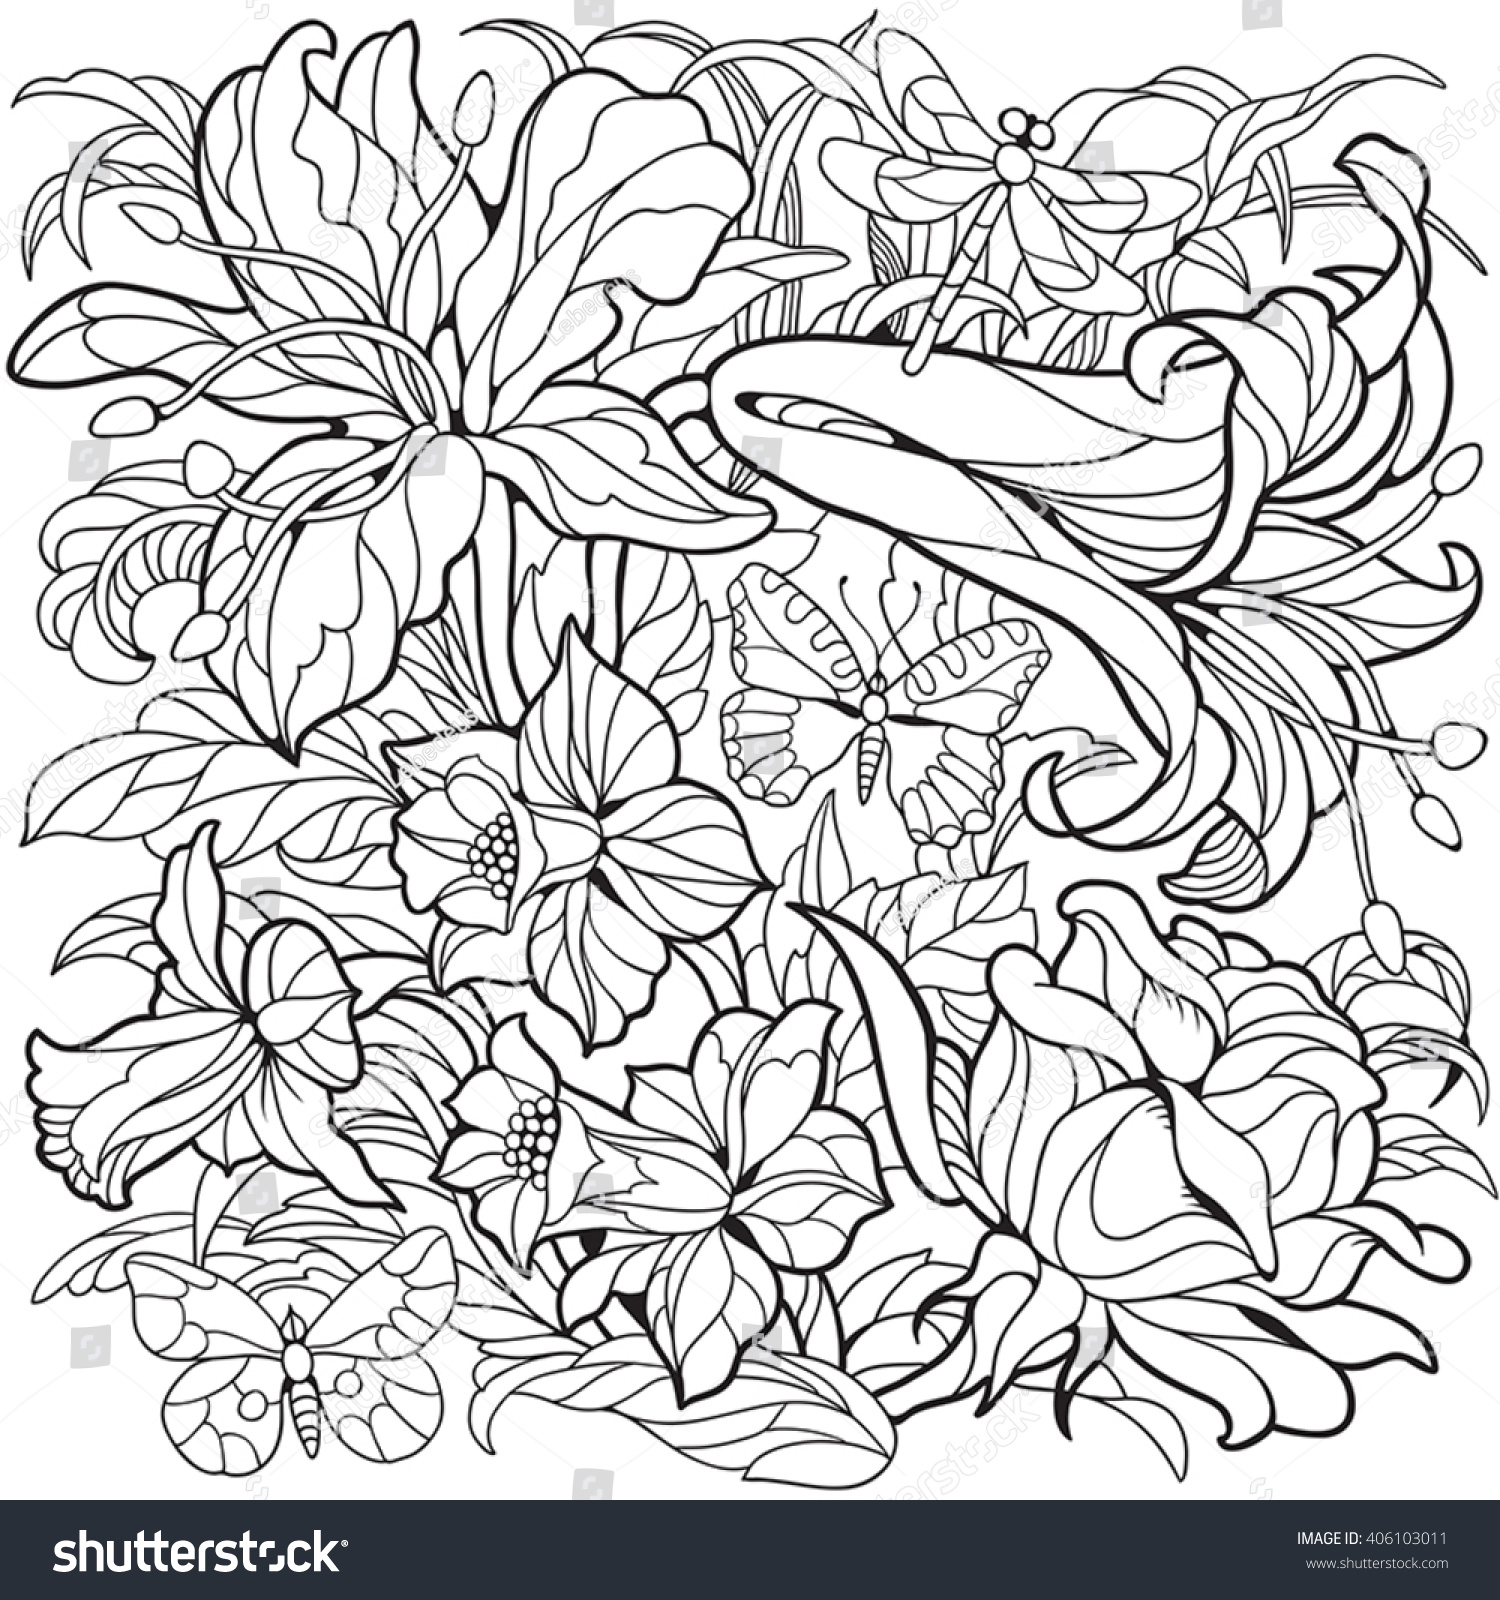 Floral Coloring Page Narcissus Flower Rose Stock Vector HD (Royalty ...